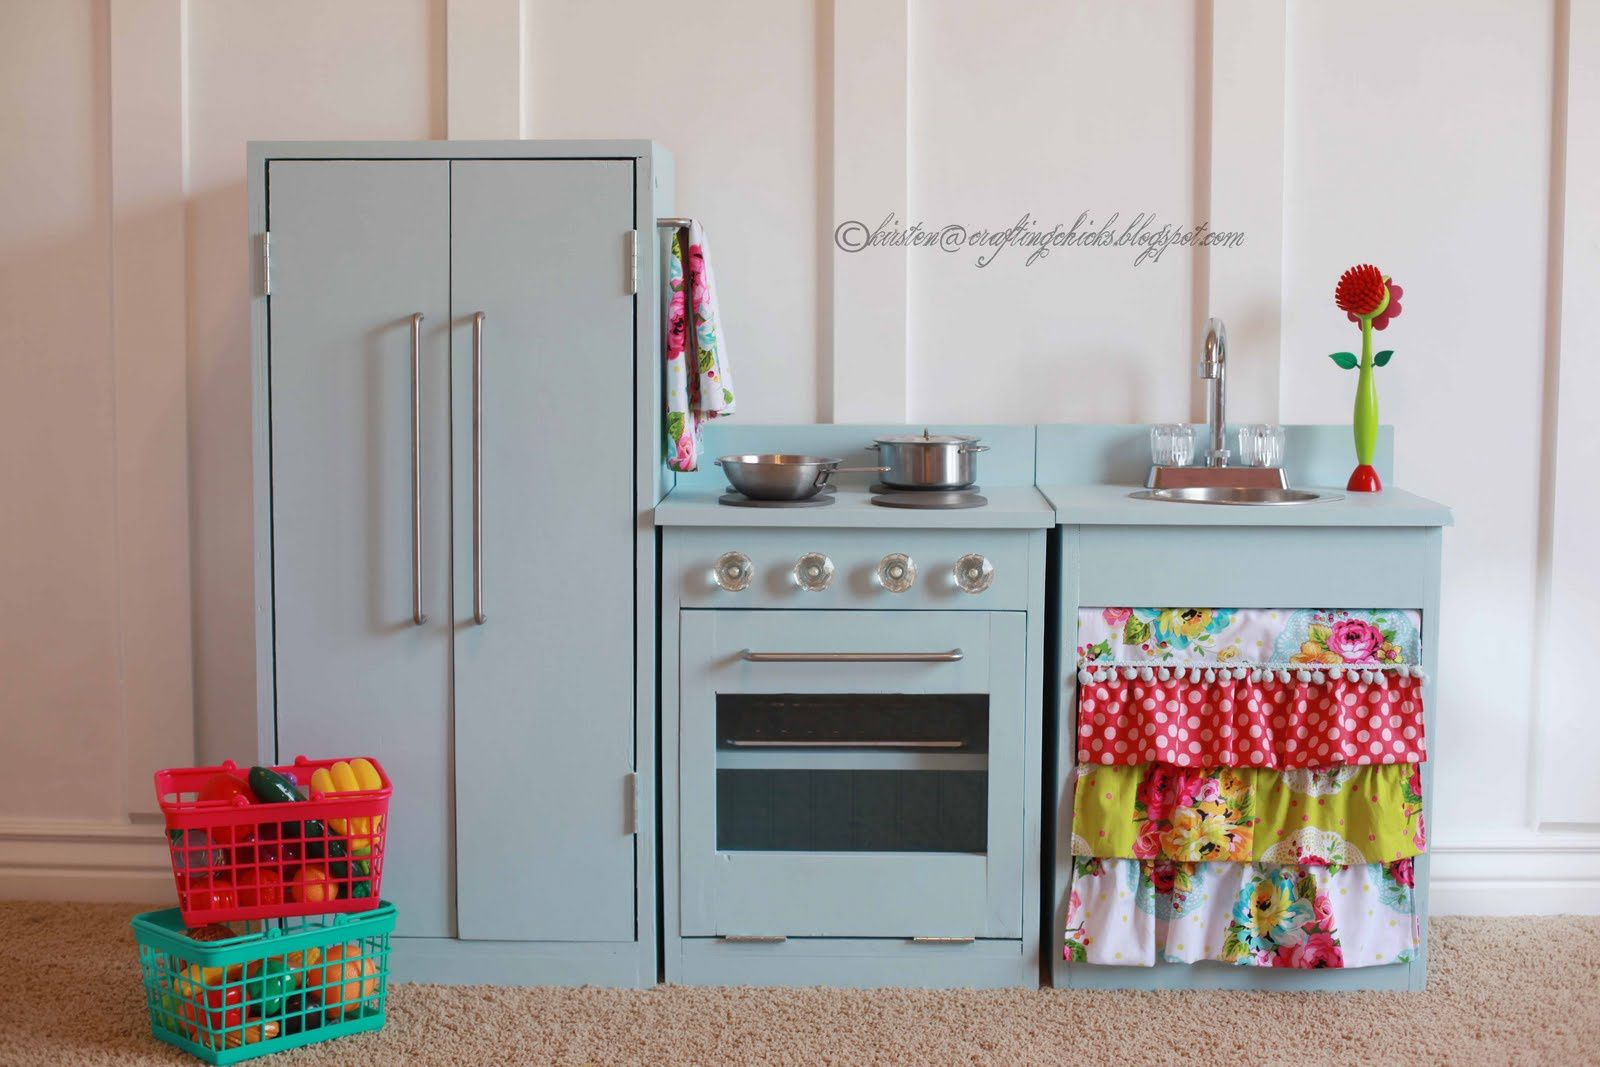 Childrens Wooden Kitchen Furniture - Best Way to Paint Wood ...